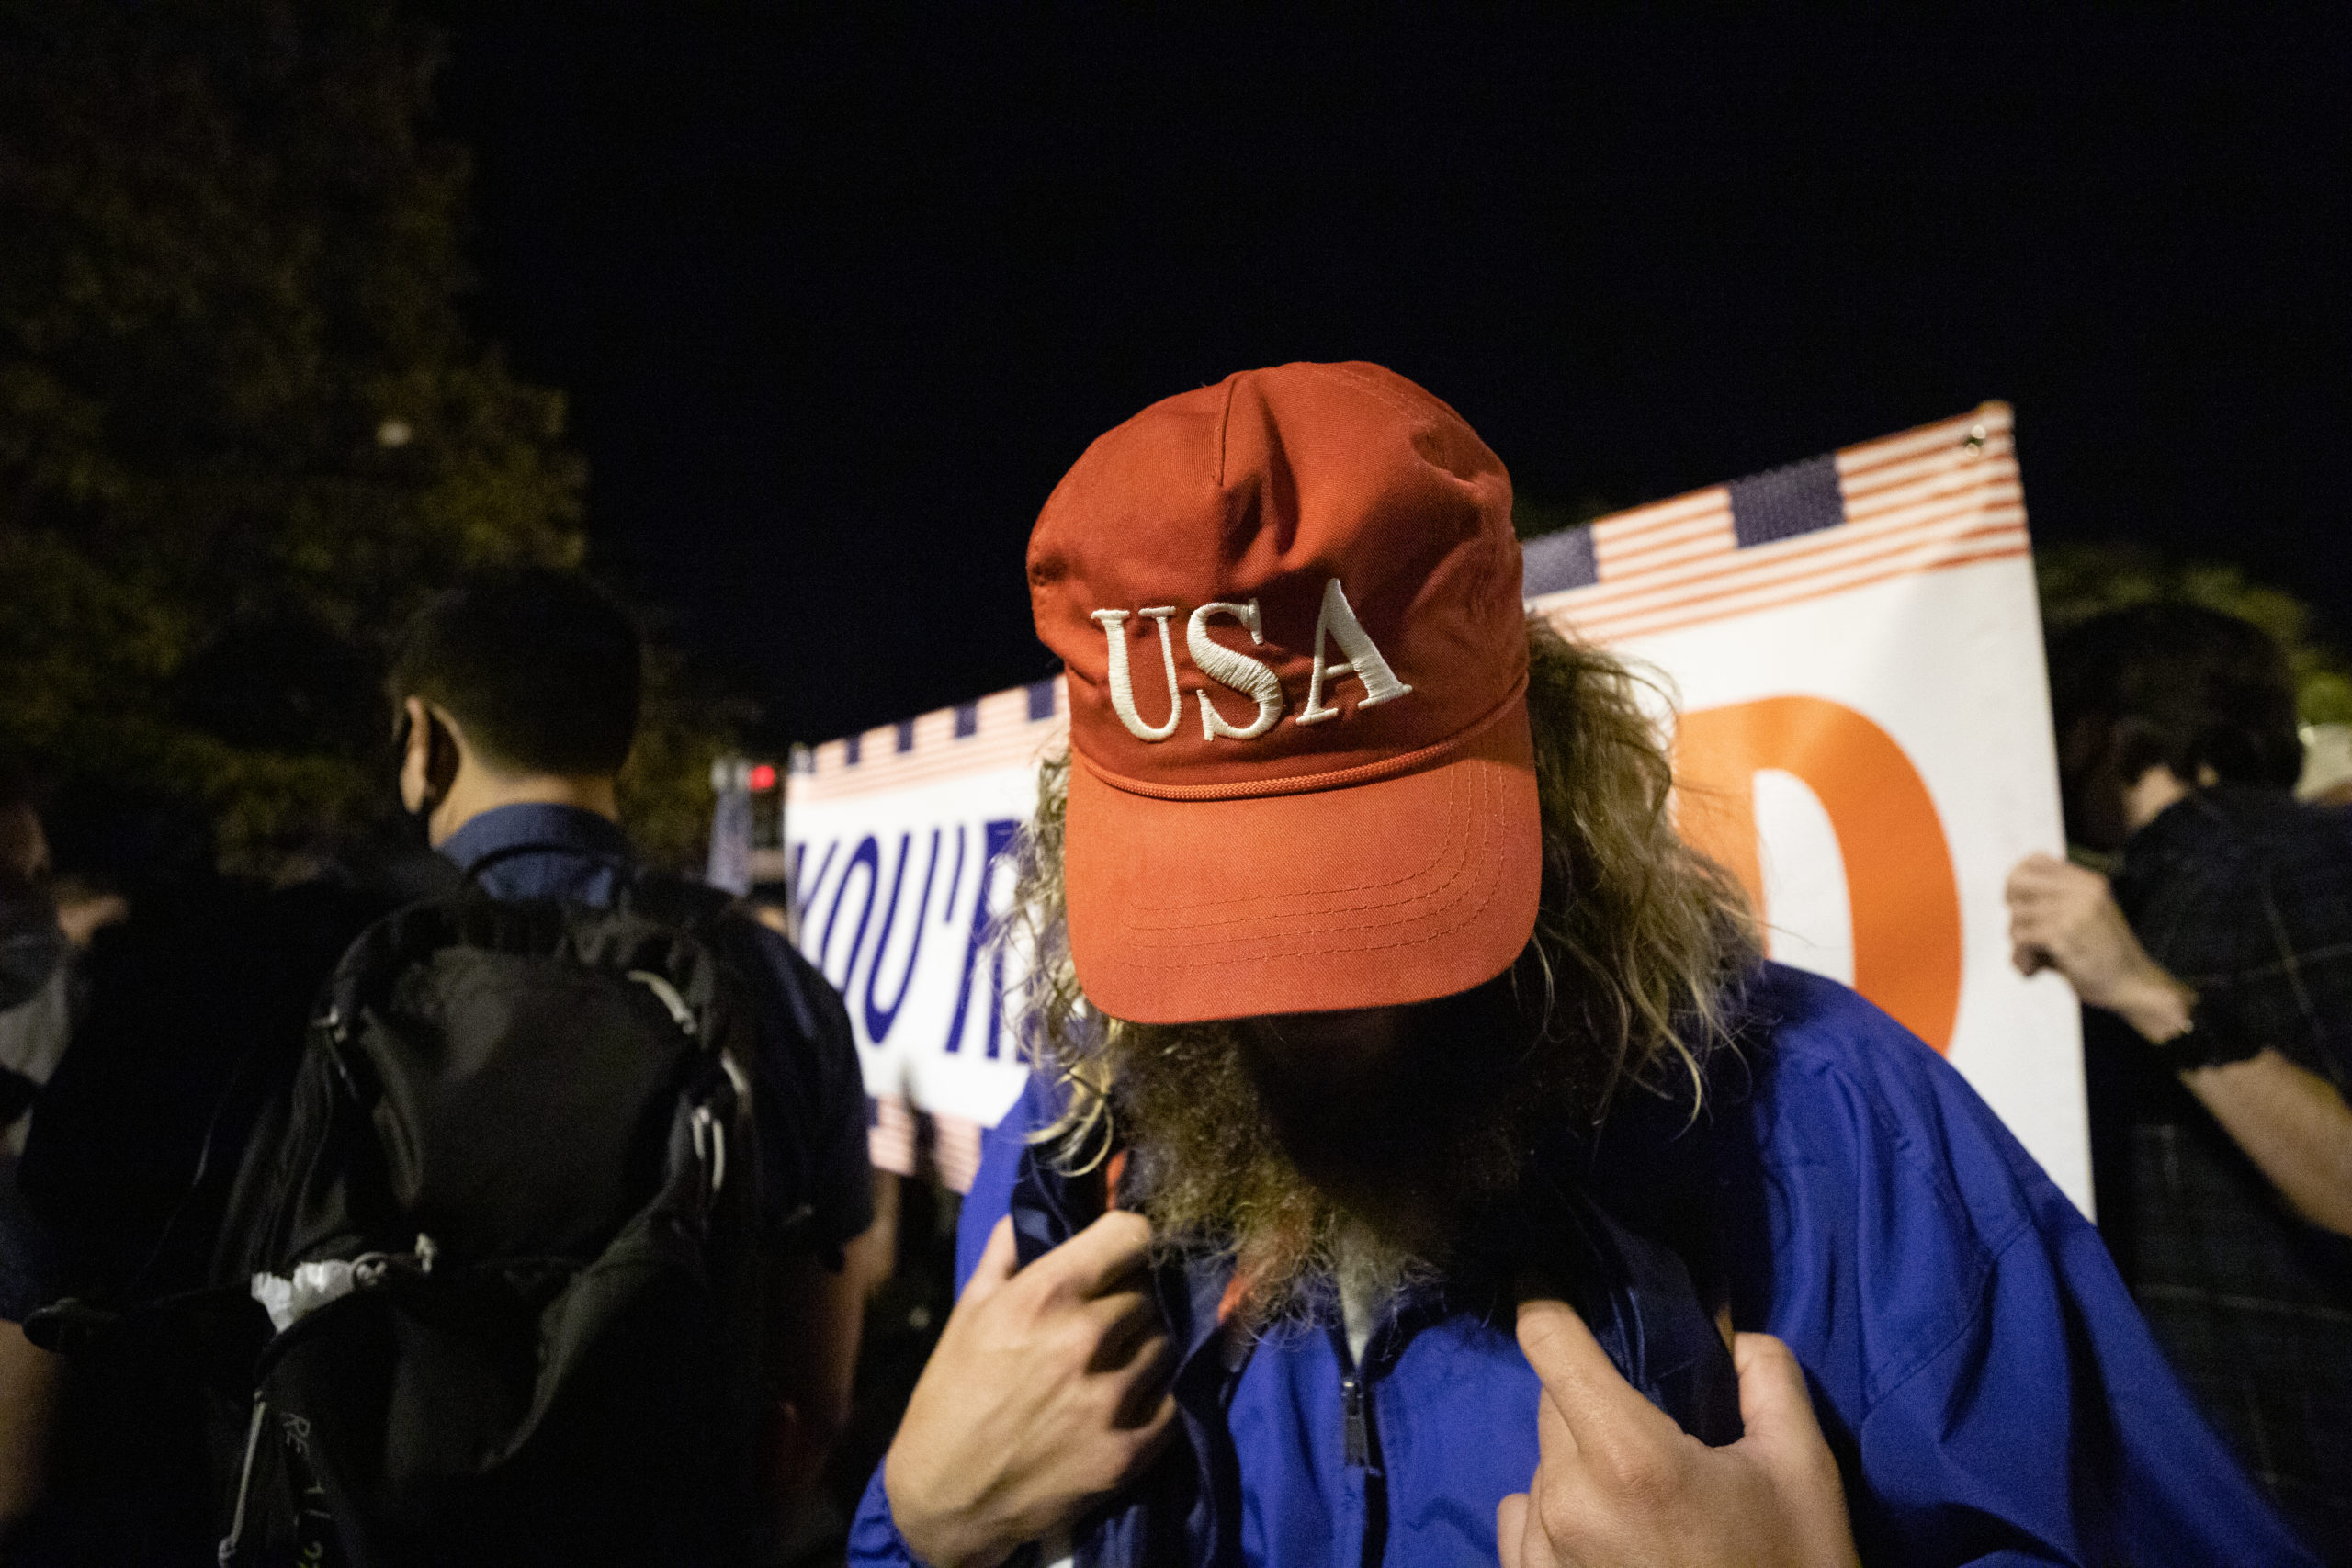 At least one maskless Trump supporter attended the celebration at Balck Lives Matter Plaza, though he would not speak on the record or have photographs taken if his face was visible, in Washington, D.C. on Nov. 7, 2020. (Kaylee Greenlee - Daily Caller News Foundation)